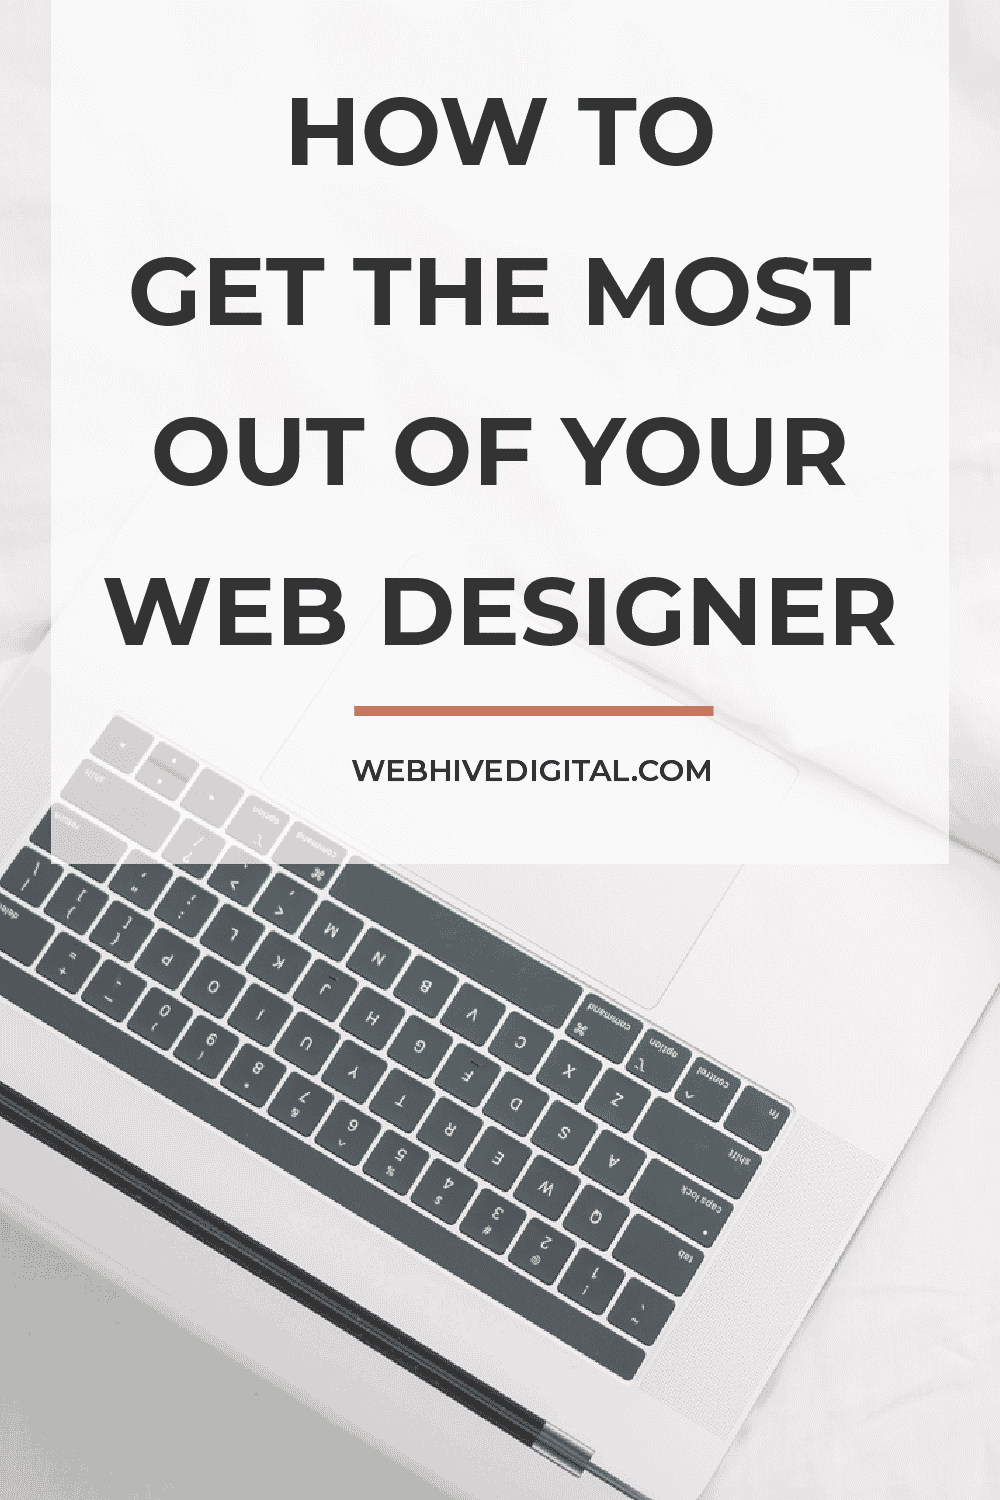 How To Get the Most Out Of Your Web Designer